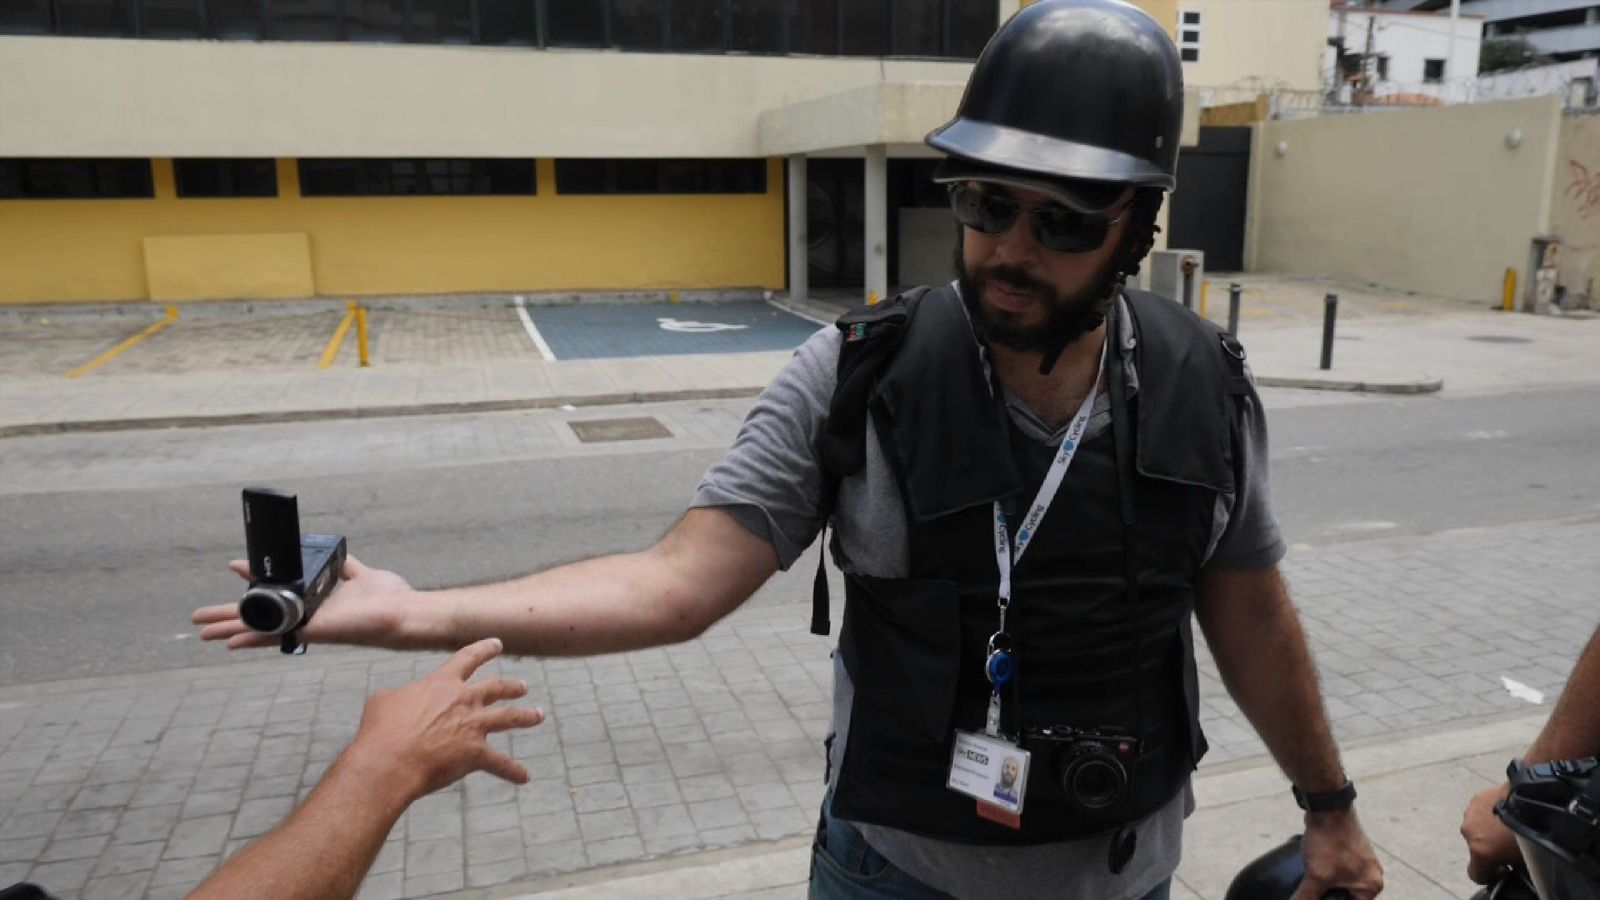 Sky News' Venezuelan producer was shot and wounded by police